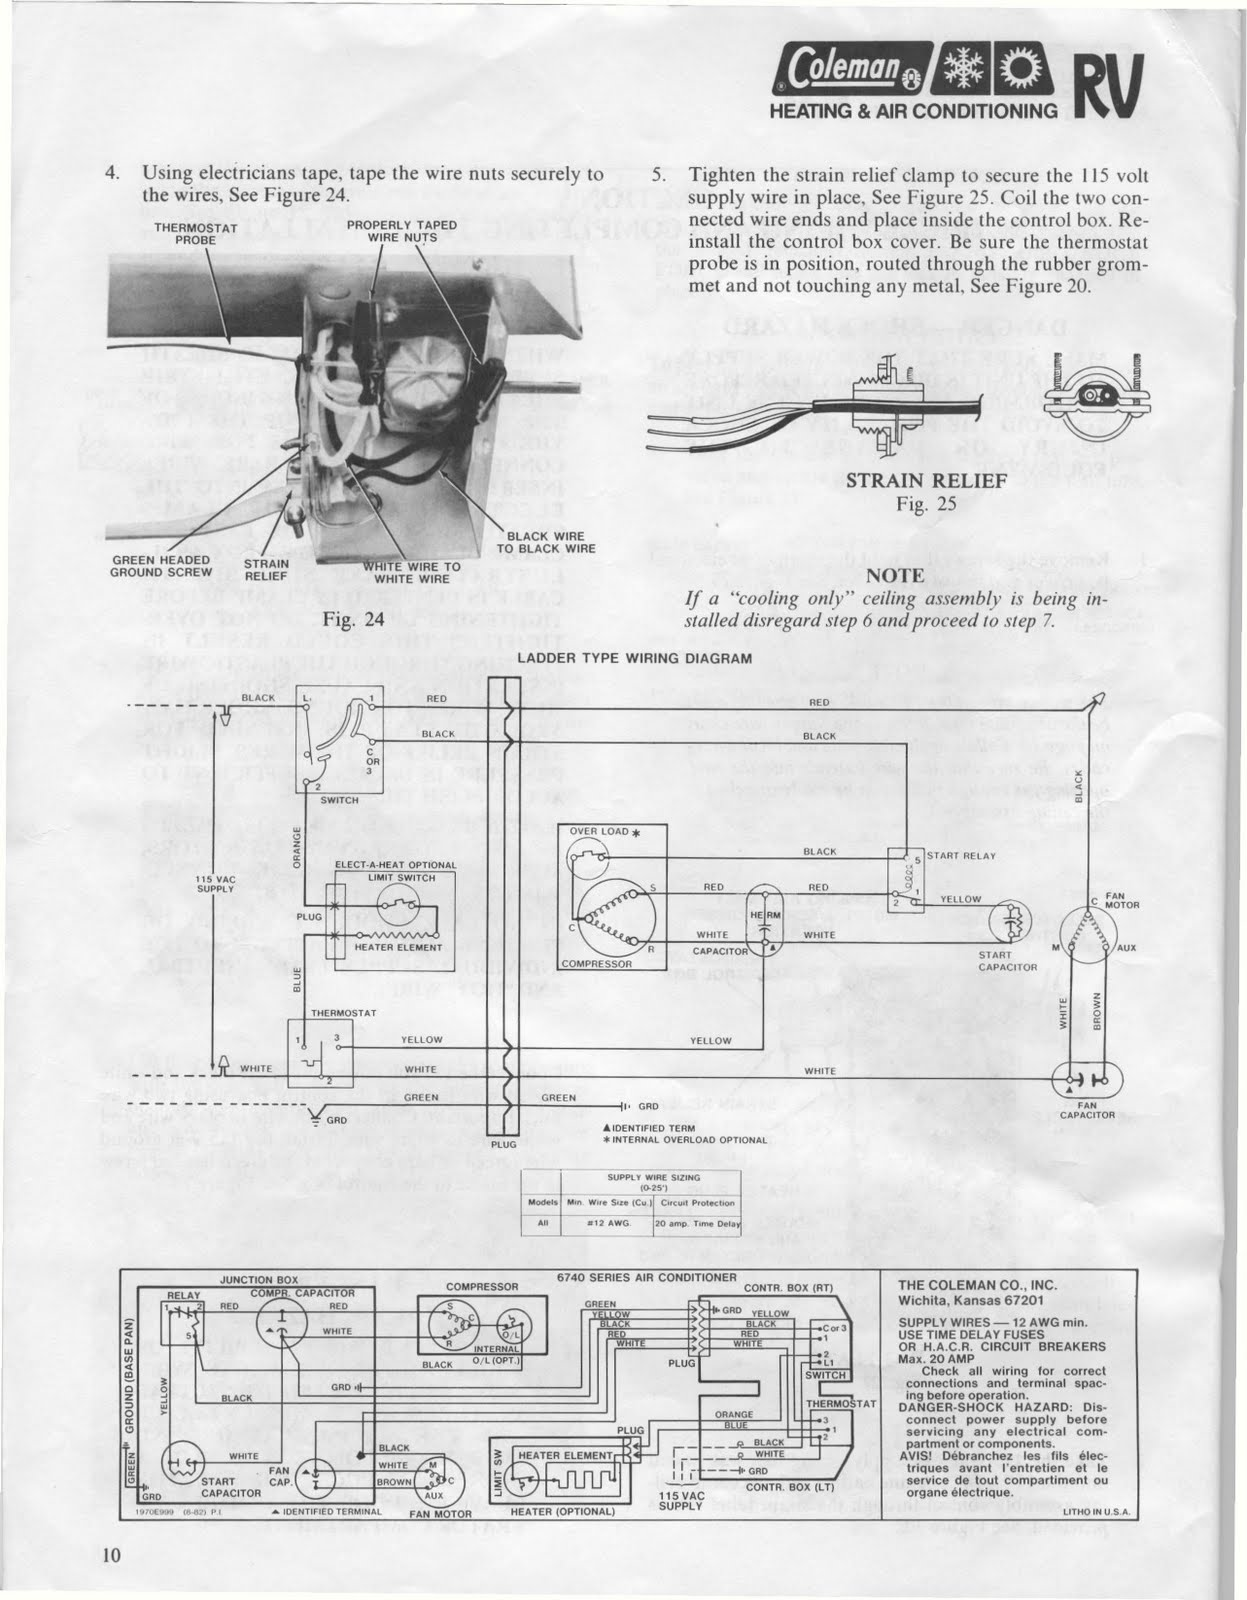 Coleman Tsr Rv Air Conditioner Manual – Check Now Blog